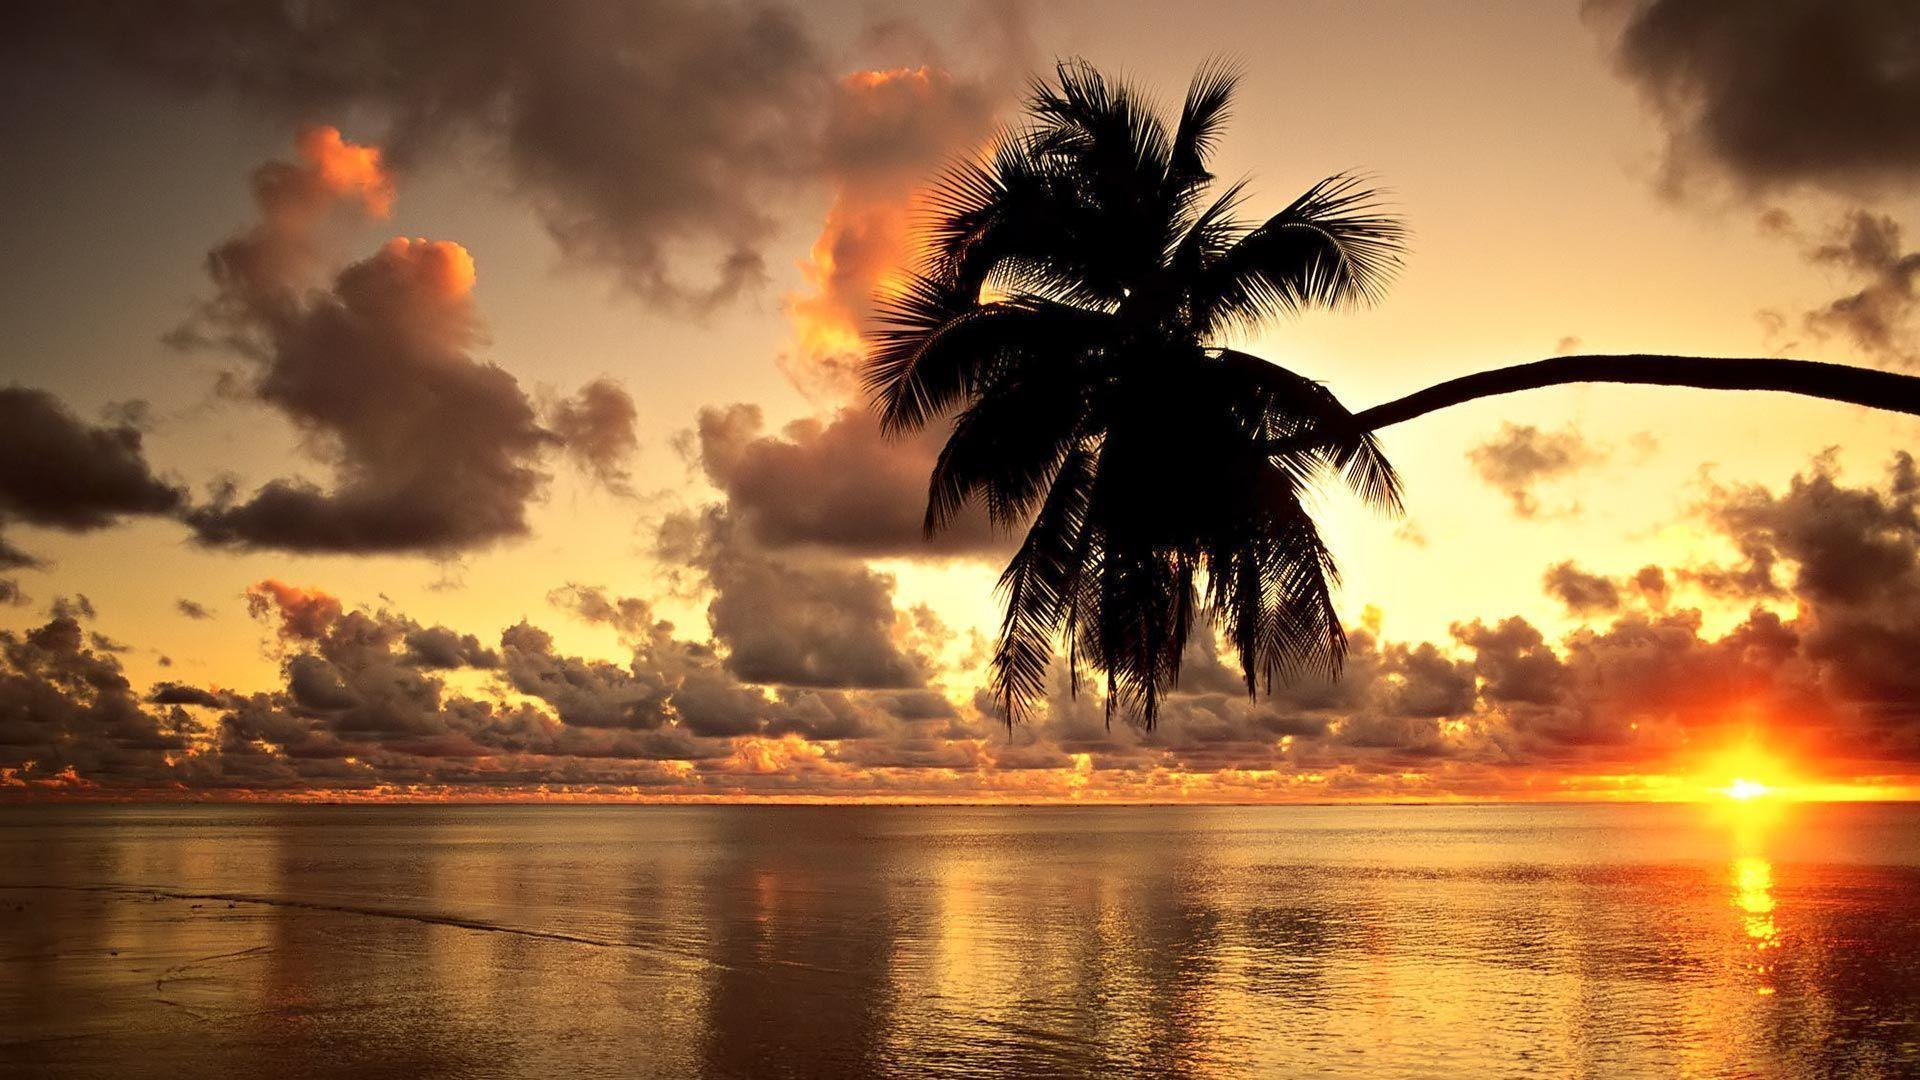 Hawaii Sunset Beach Wallpapers Free Wallpapers